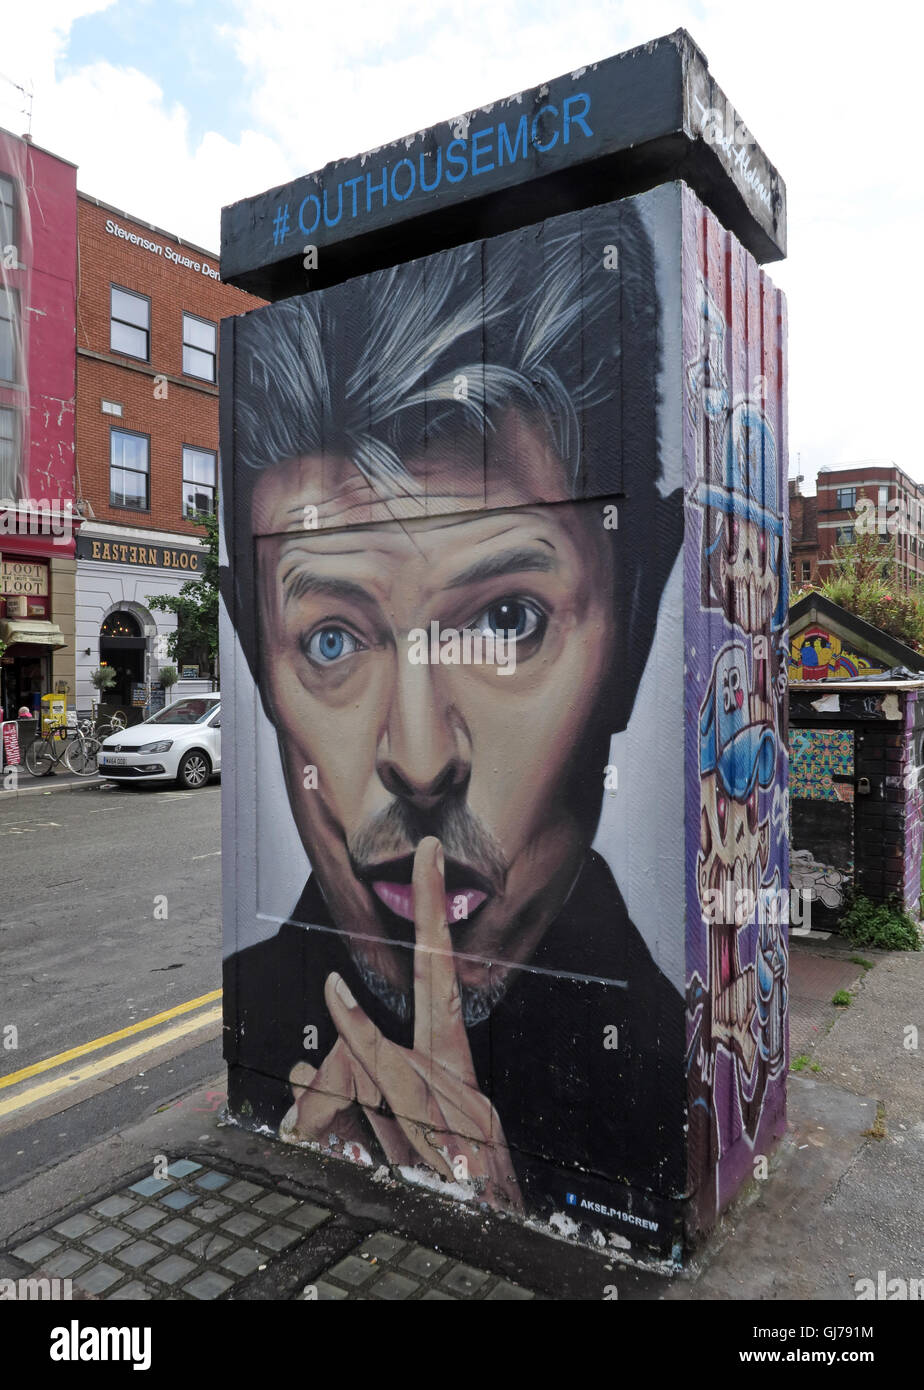 Northern Quarter Art in Stevenson Square Manchester, UK - Wall Graffiti August2016 OUTHOUSEMCR - Stock Image